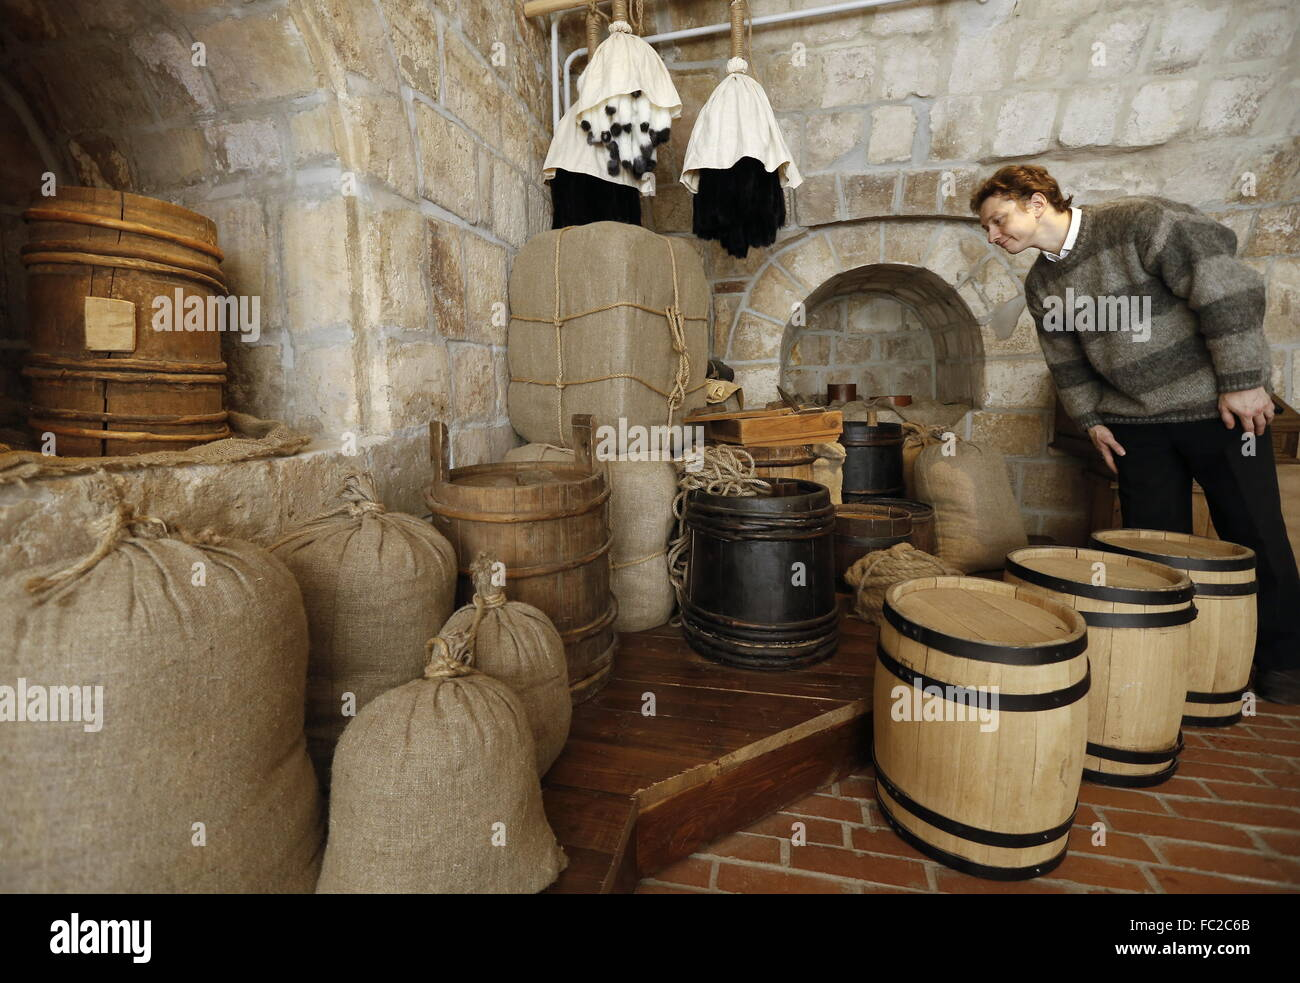 Moscow, Russia. 20th Jan, 2016. A visitor looks at a display of sacks, barrels and bundles of furs in the Old English - Stock Image